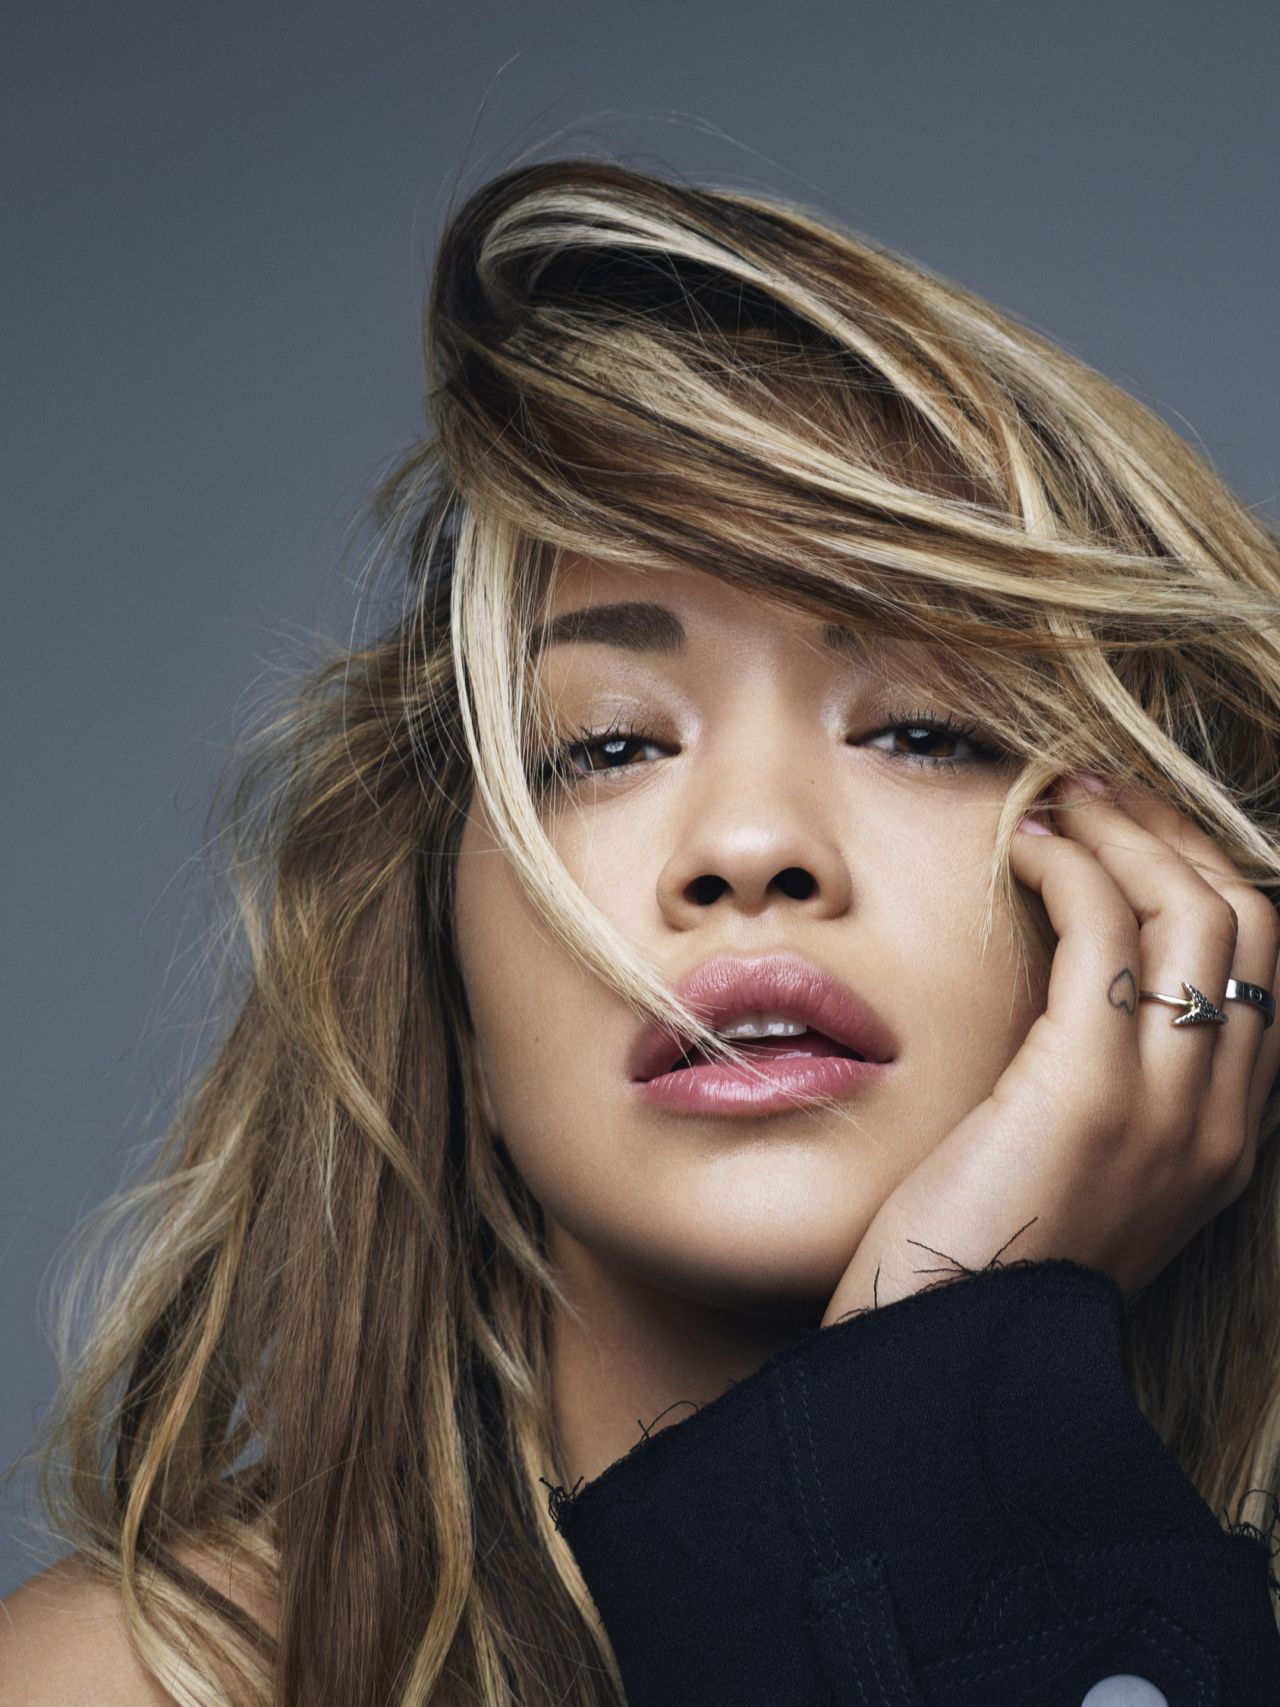 Rita Ora Photoshoot For Absolut Vodka 2017